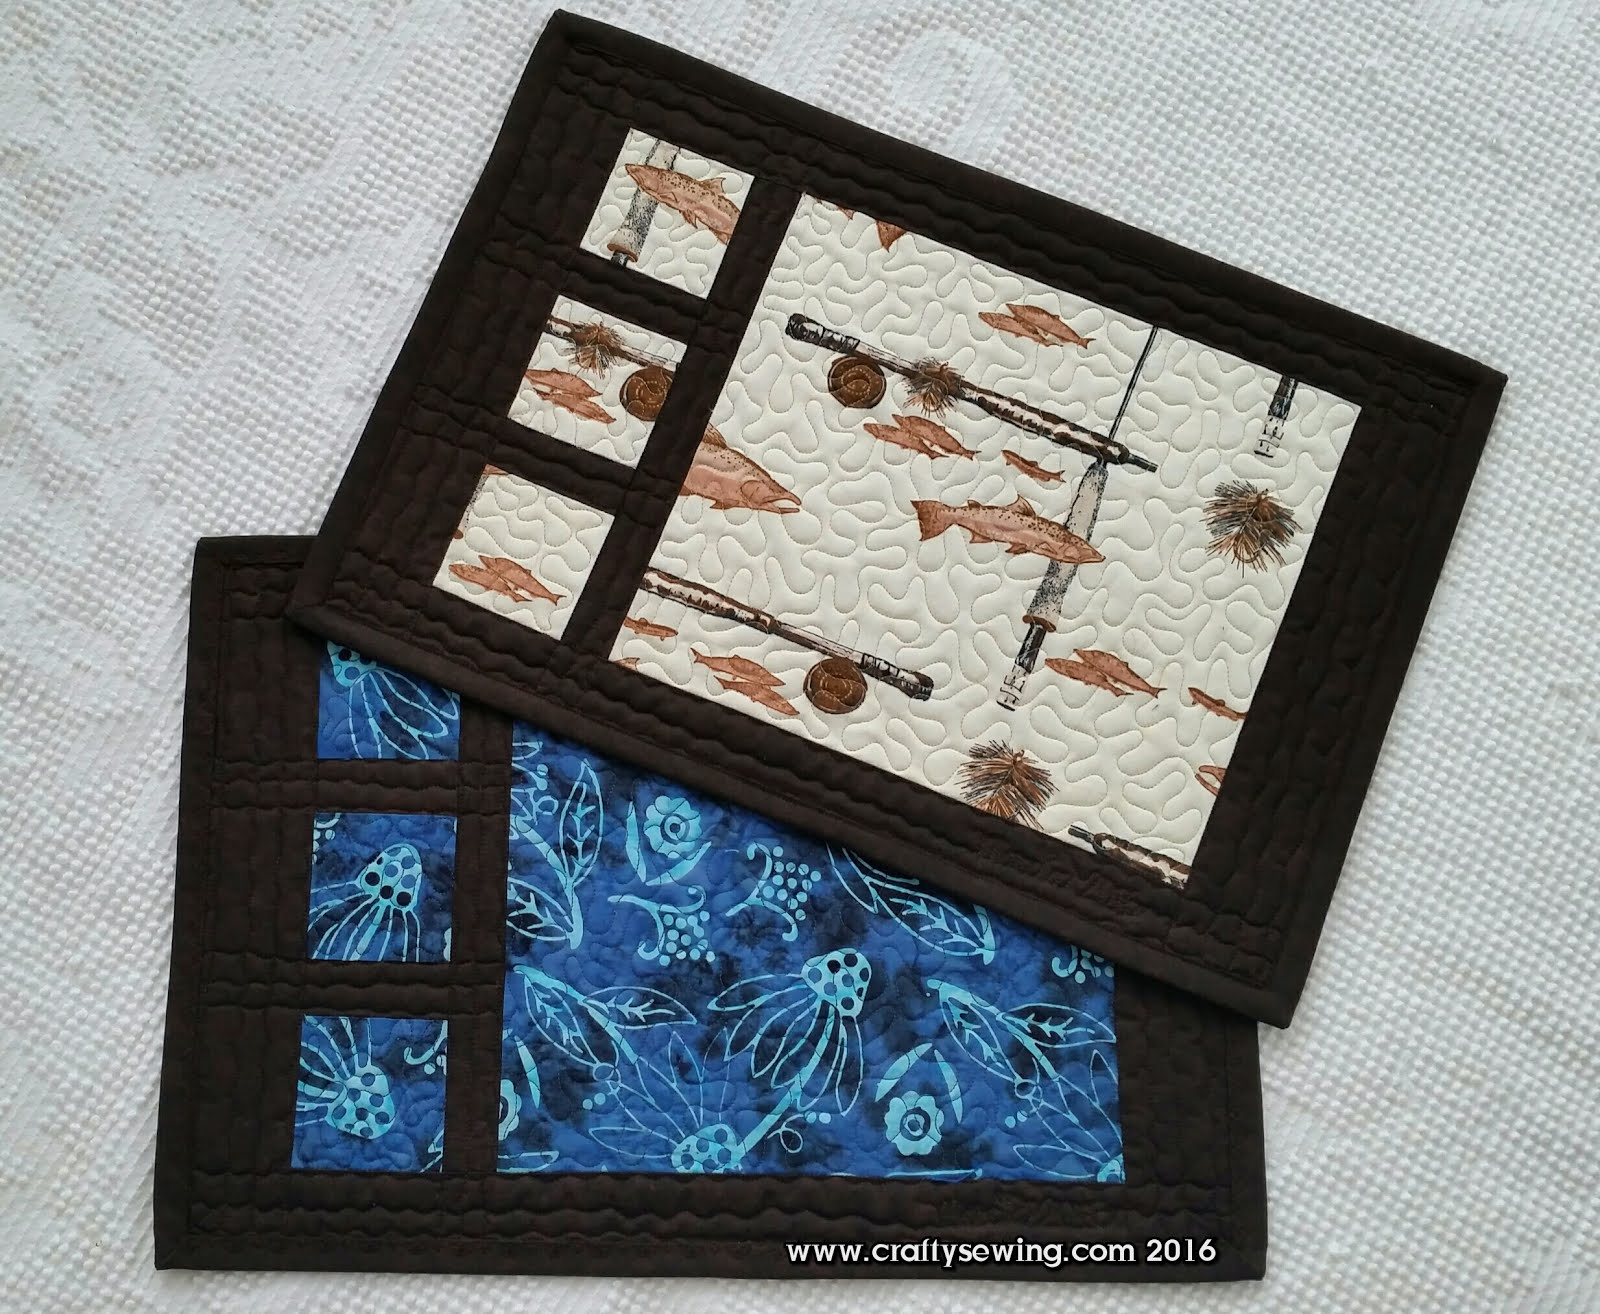 2016 Project Quilting Season 7 Challenge 2